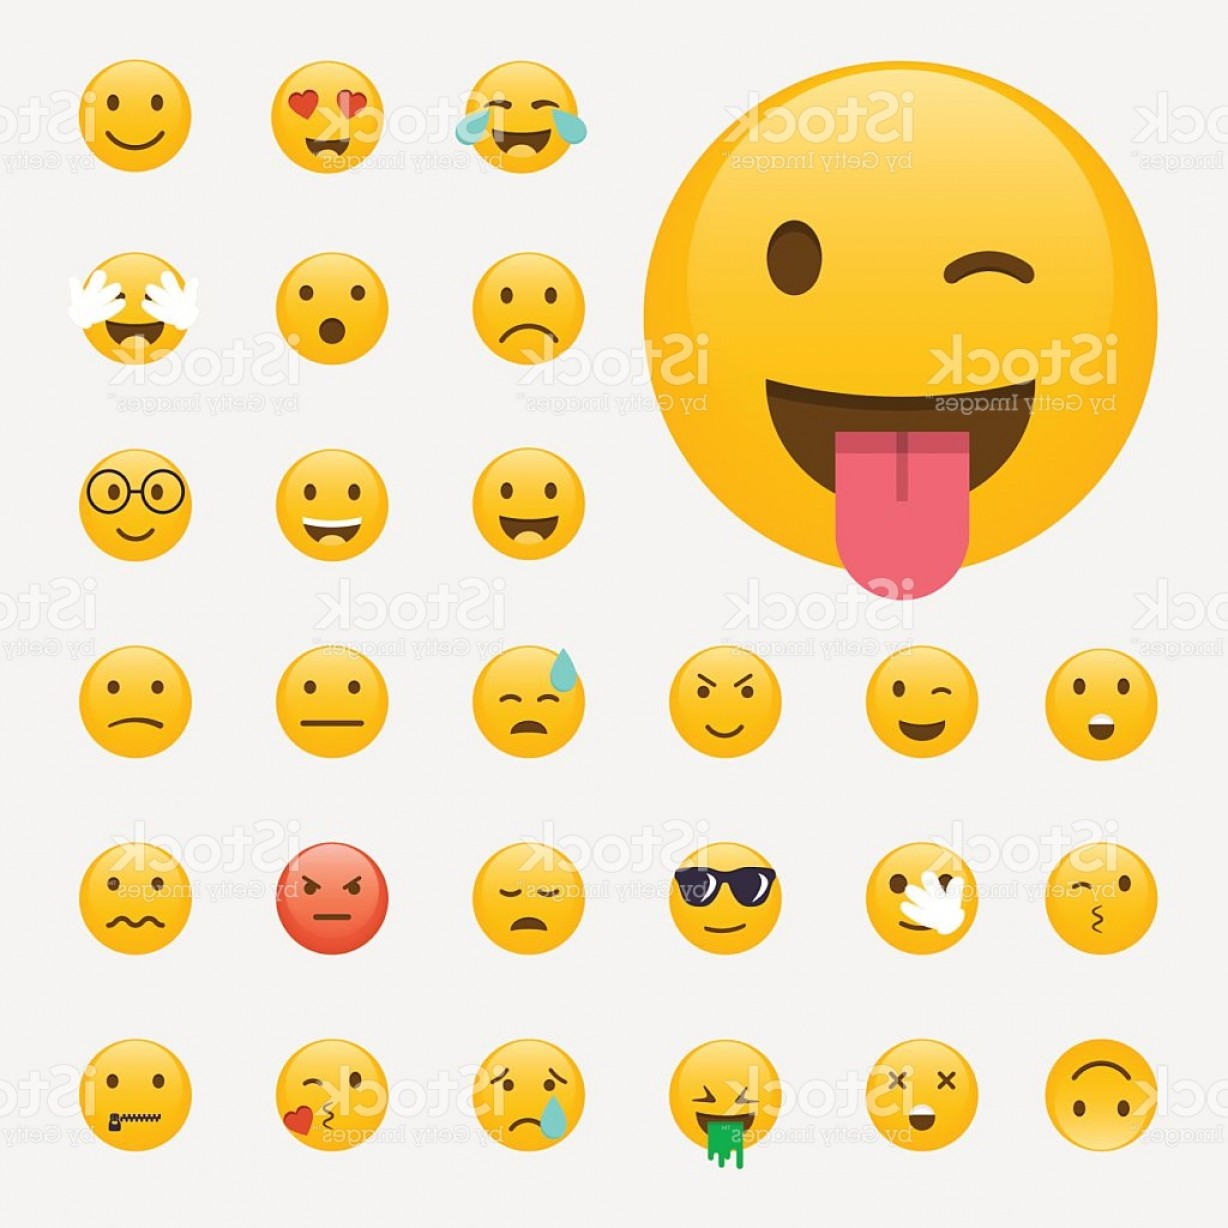 Popular Vector Emoji: Set Of Emoticons Emoji Flat Design Avatar Design Vector Illus Gm